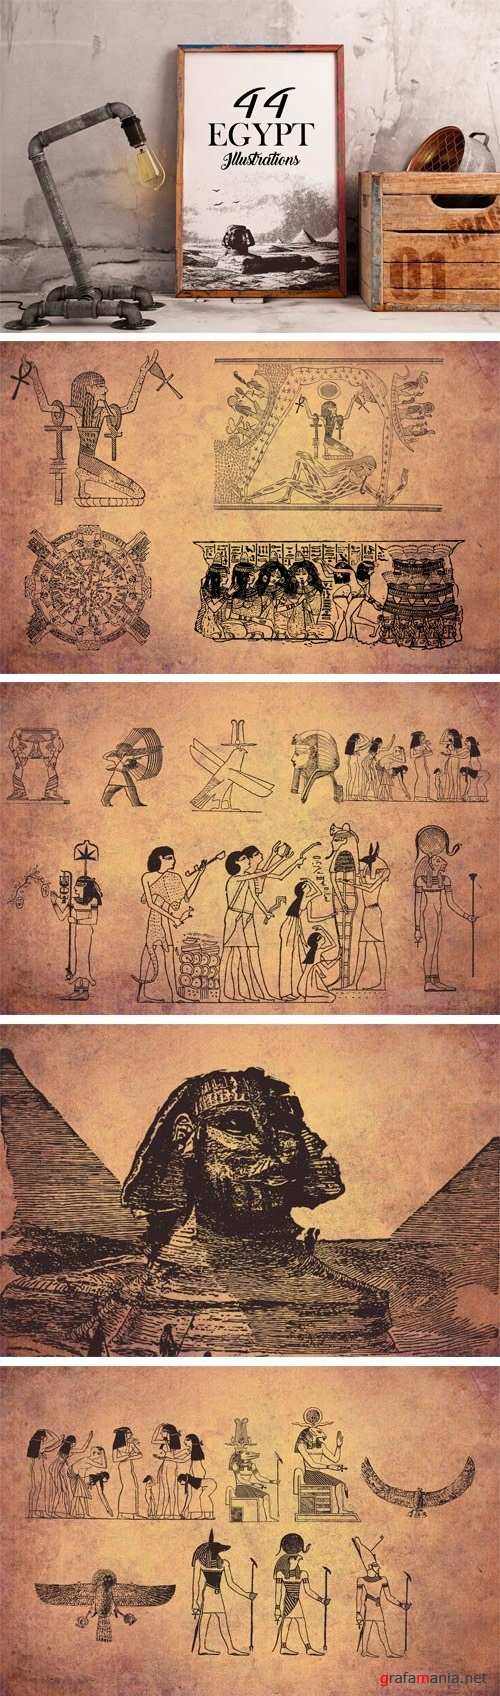 44 Egypt Illustrations - 1275959